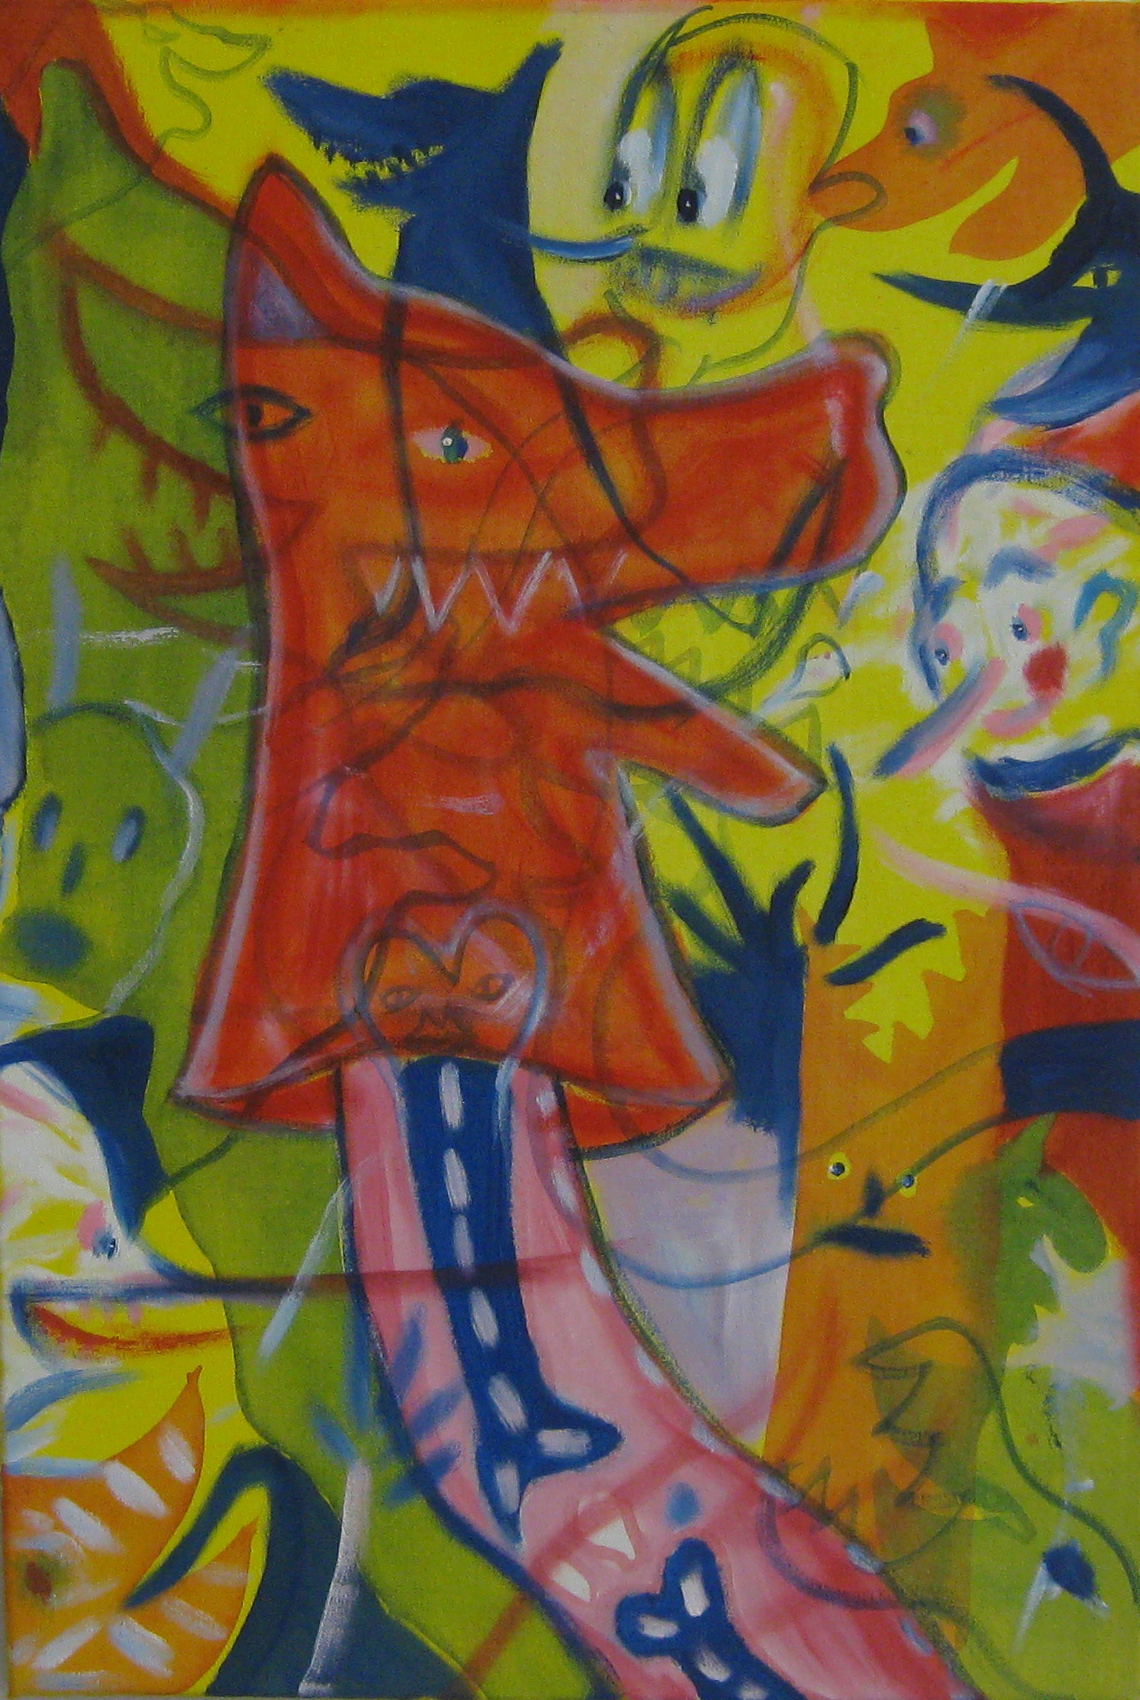 Master of Puppets  40 x 60  Acrylic on canvas